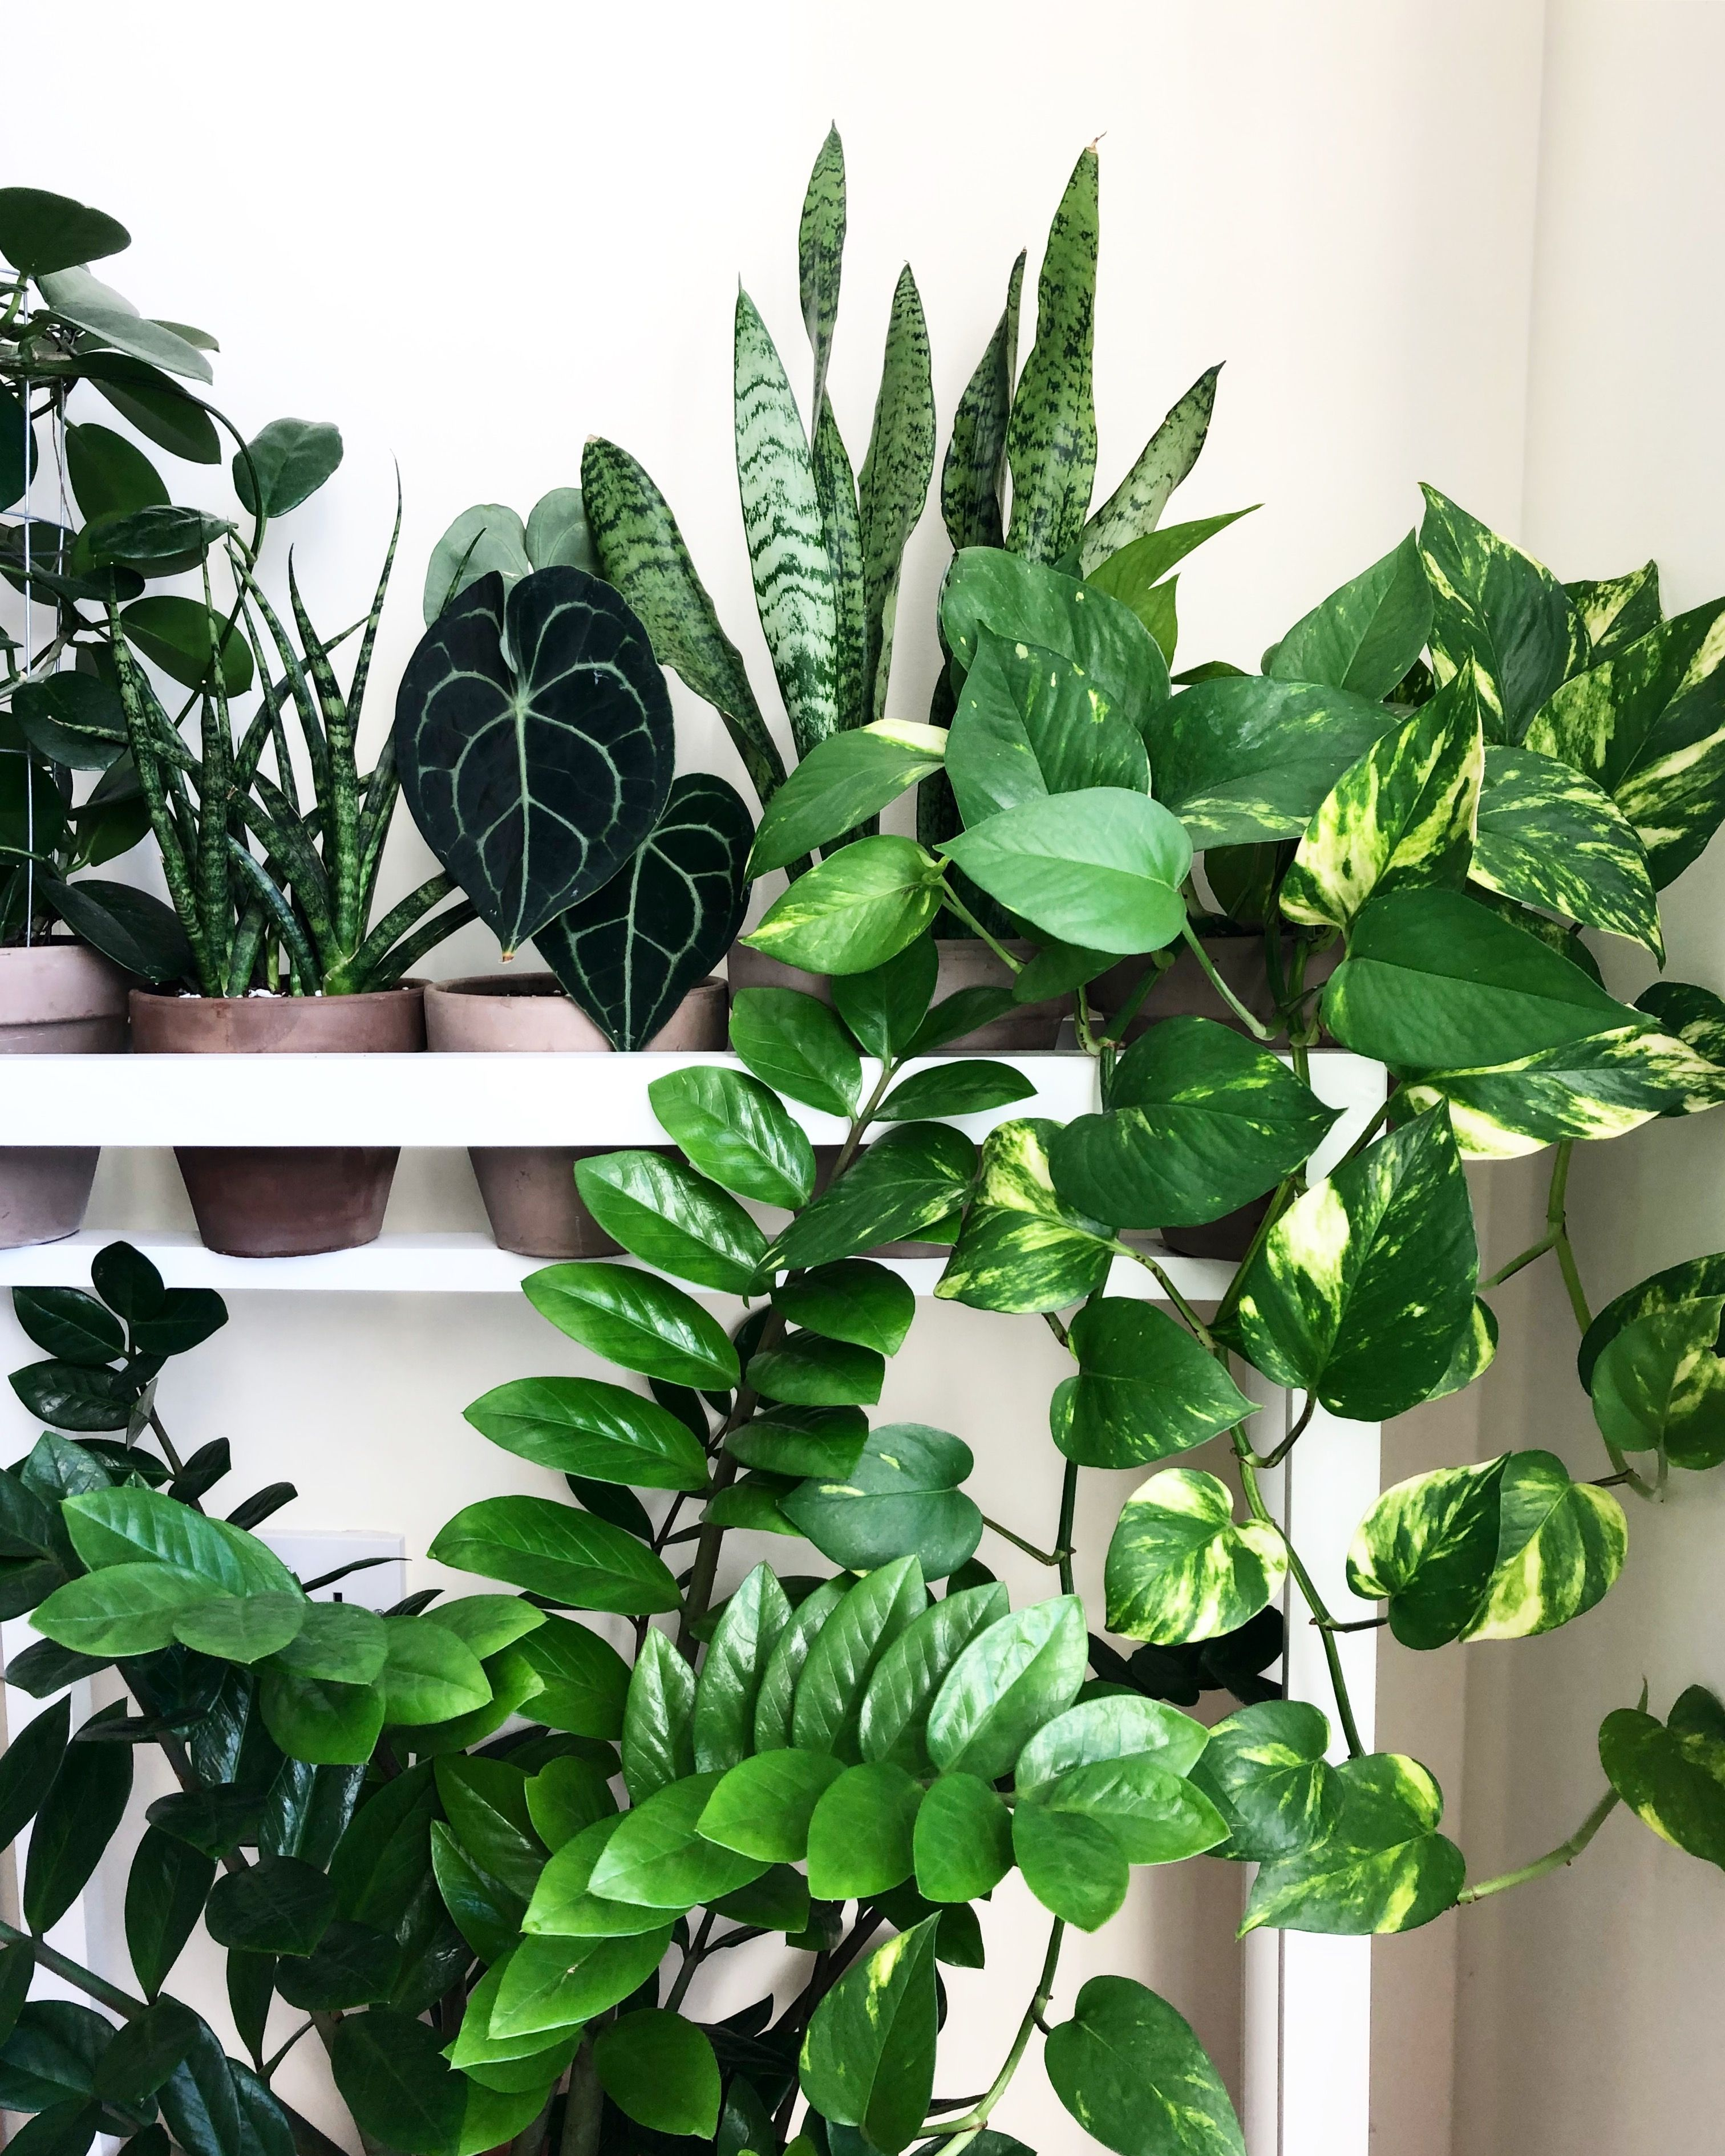 Trendy houseplants for an indoor sanctuary - Sprig & Vine on best clean air plants home, air plants for home, good plants books, water plants for home, mint plants for home, good dogs for home, fake plants for home, green plants for home, red plants for home, best plants for home, feng shui plants for home, house plants for home, money plants for home, good plants outdoors, plants in your home, low light plants for home, good plants to grow indoors, lucky plants for home, healthy plants for home,